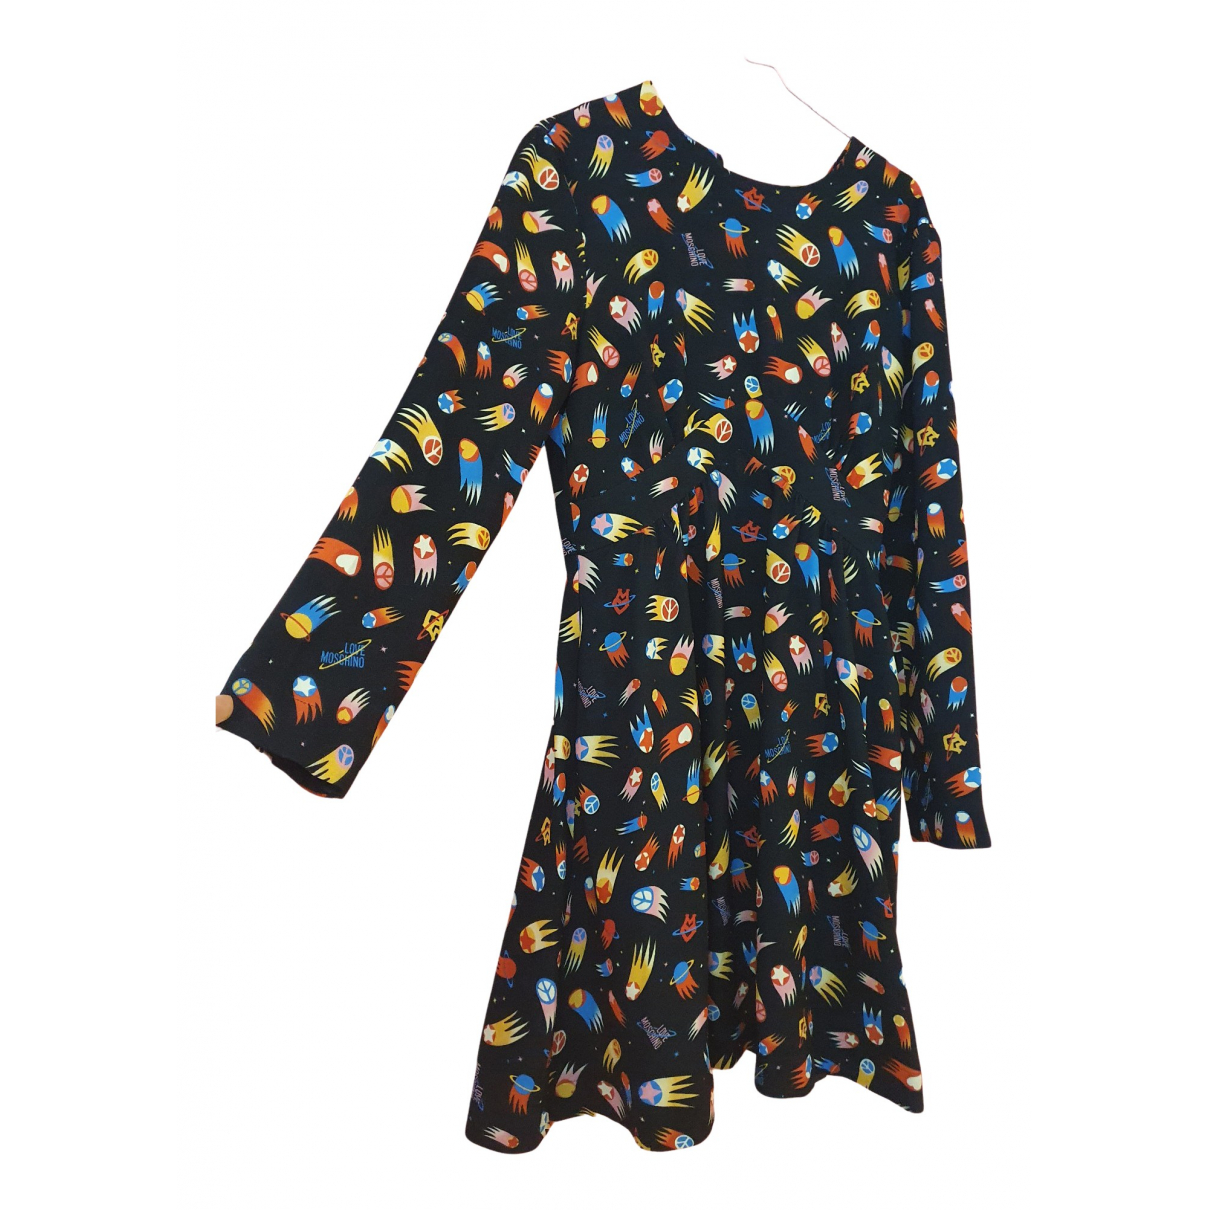 Moschino Love N Multicolour Cotton - elasthane dress for Women 12 UK